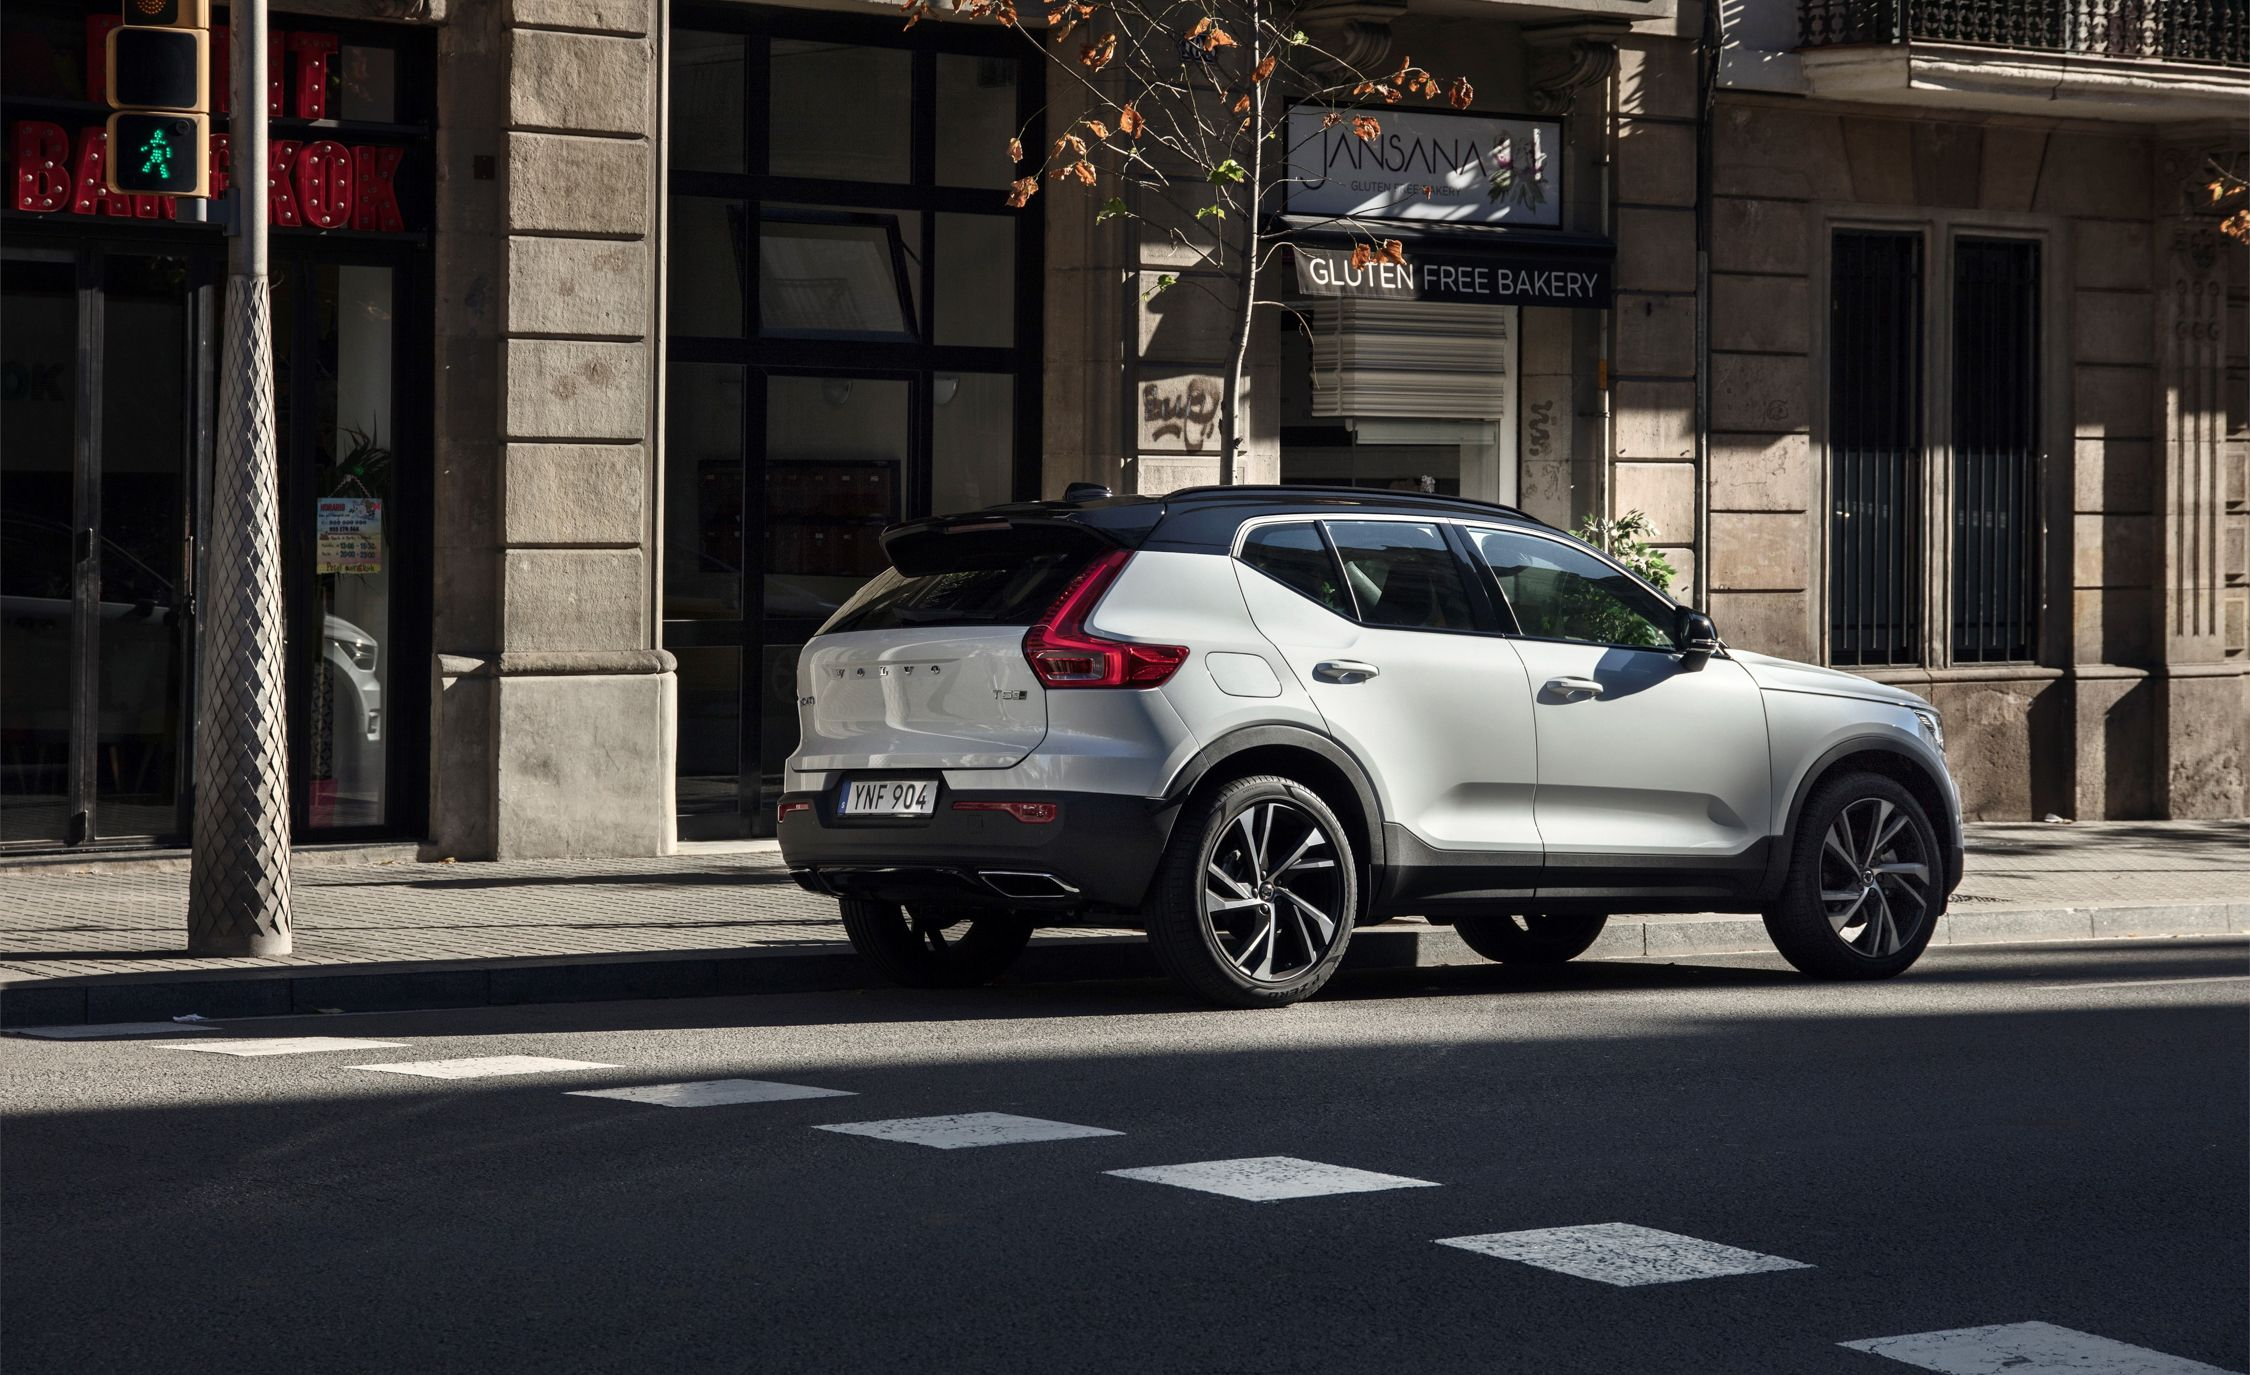 volvo xc40 reviews | volvo xc40 price, photos, and specs | car and